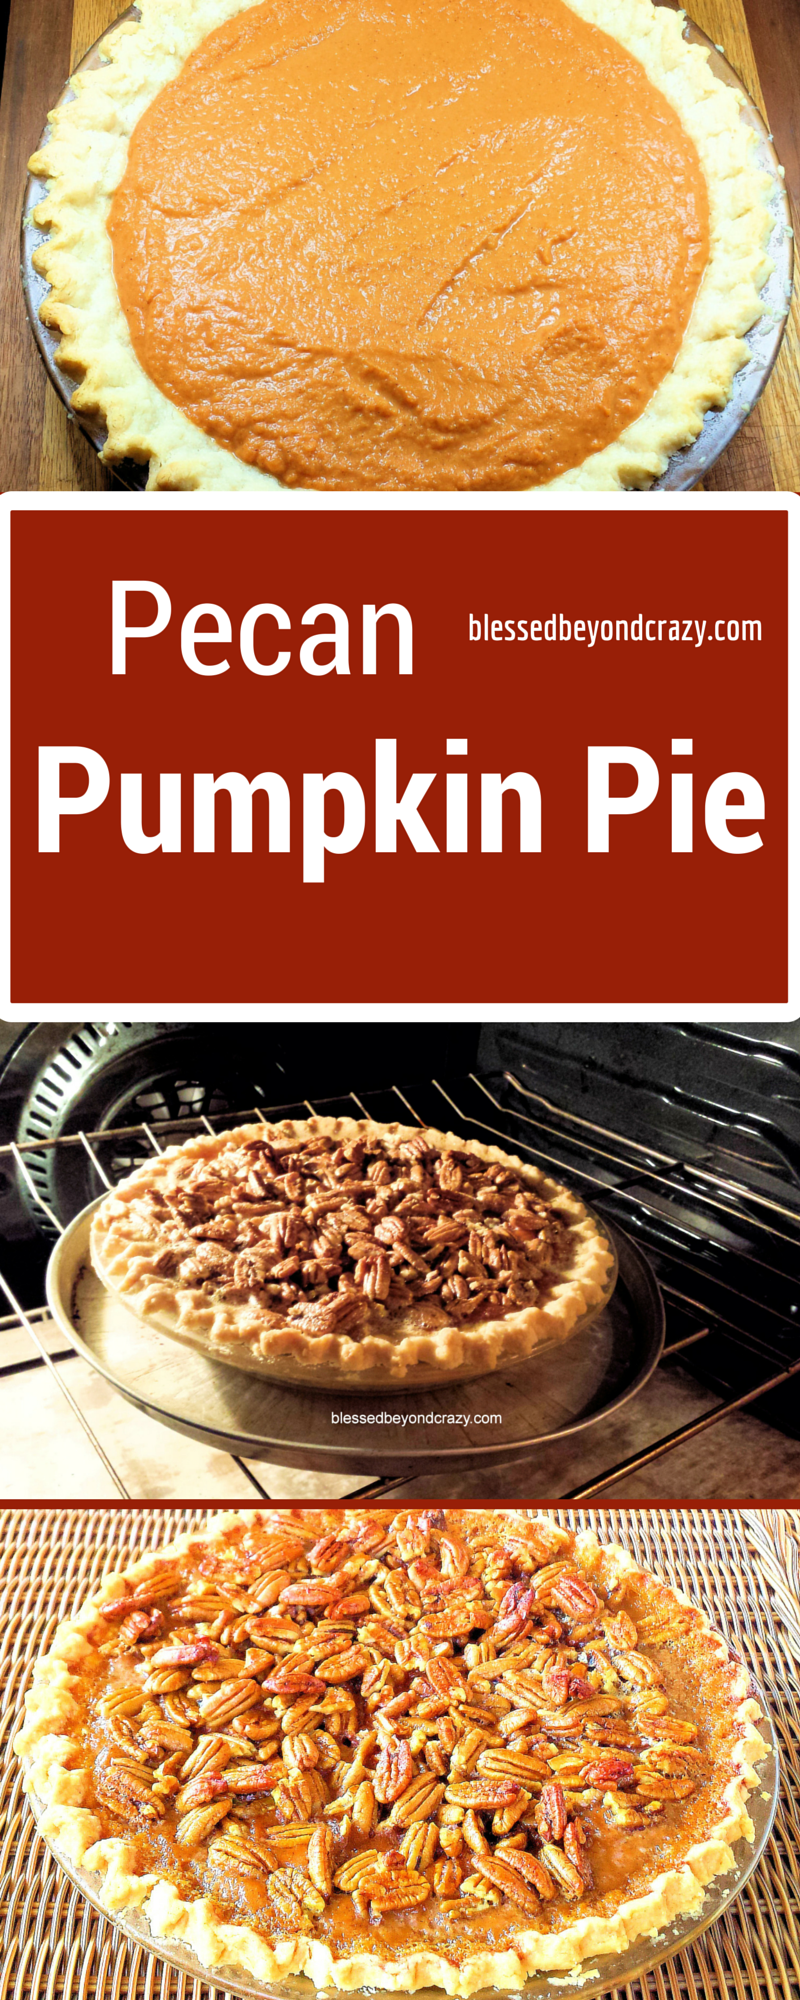 Pecan Pumpkin Pie - Blessed Beyond Crazy